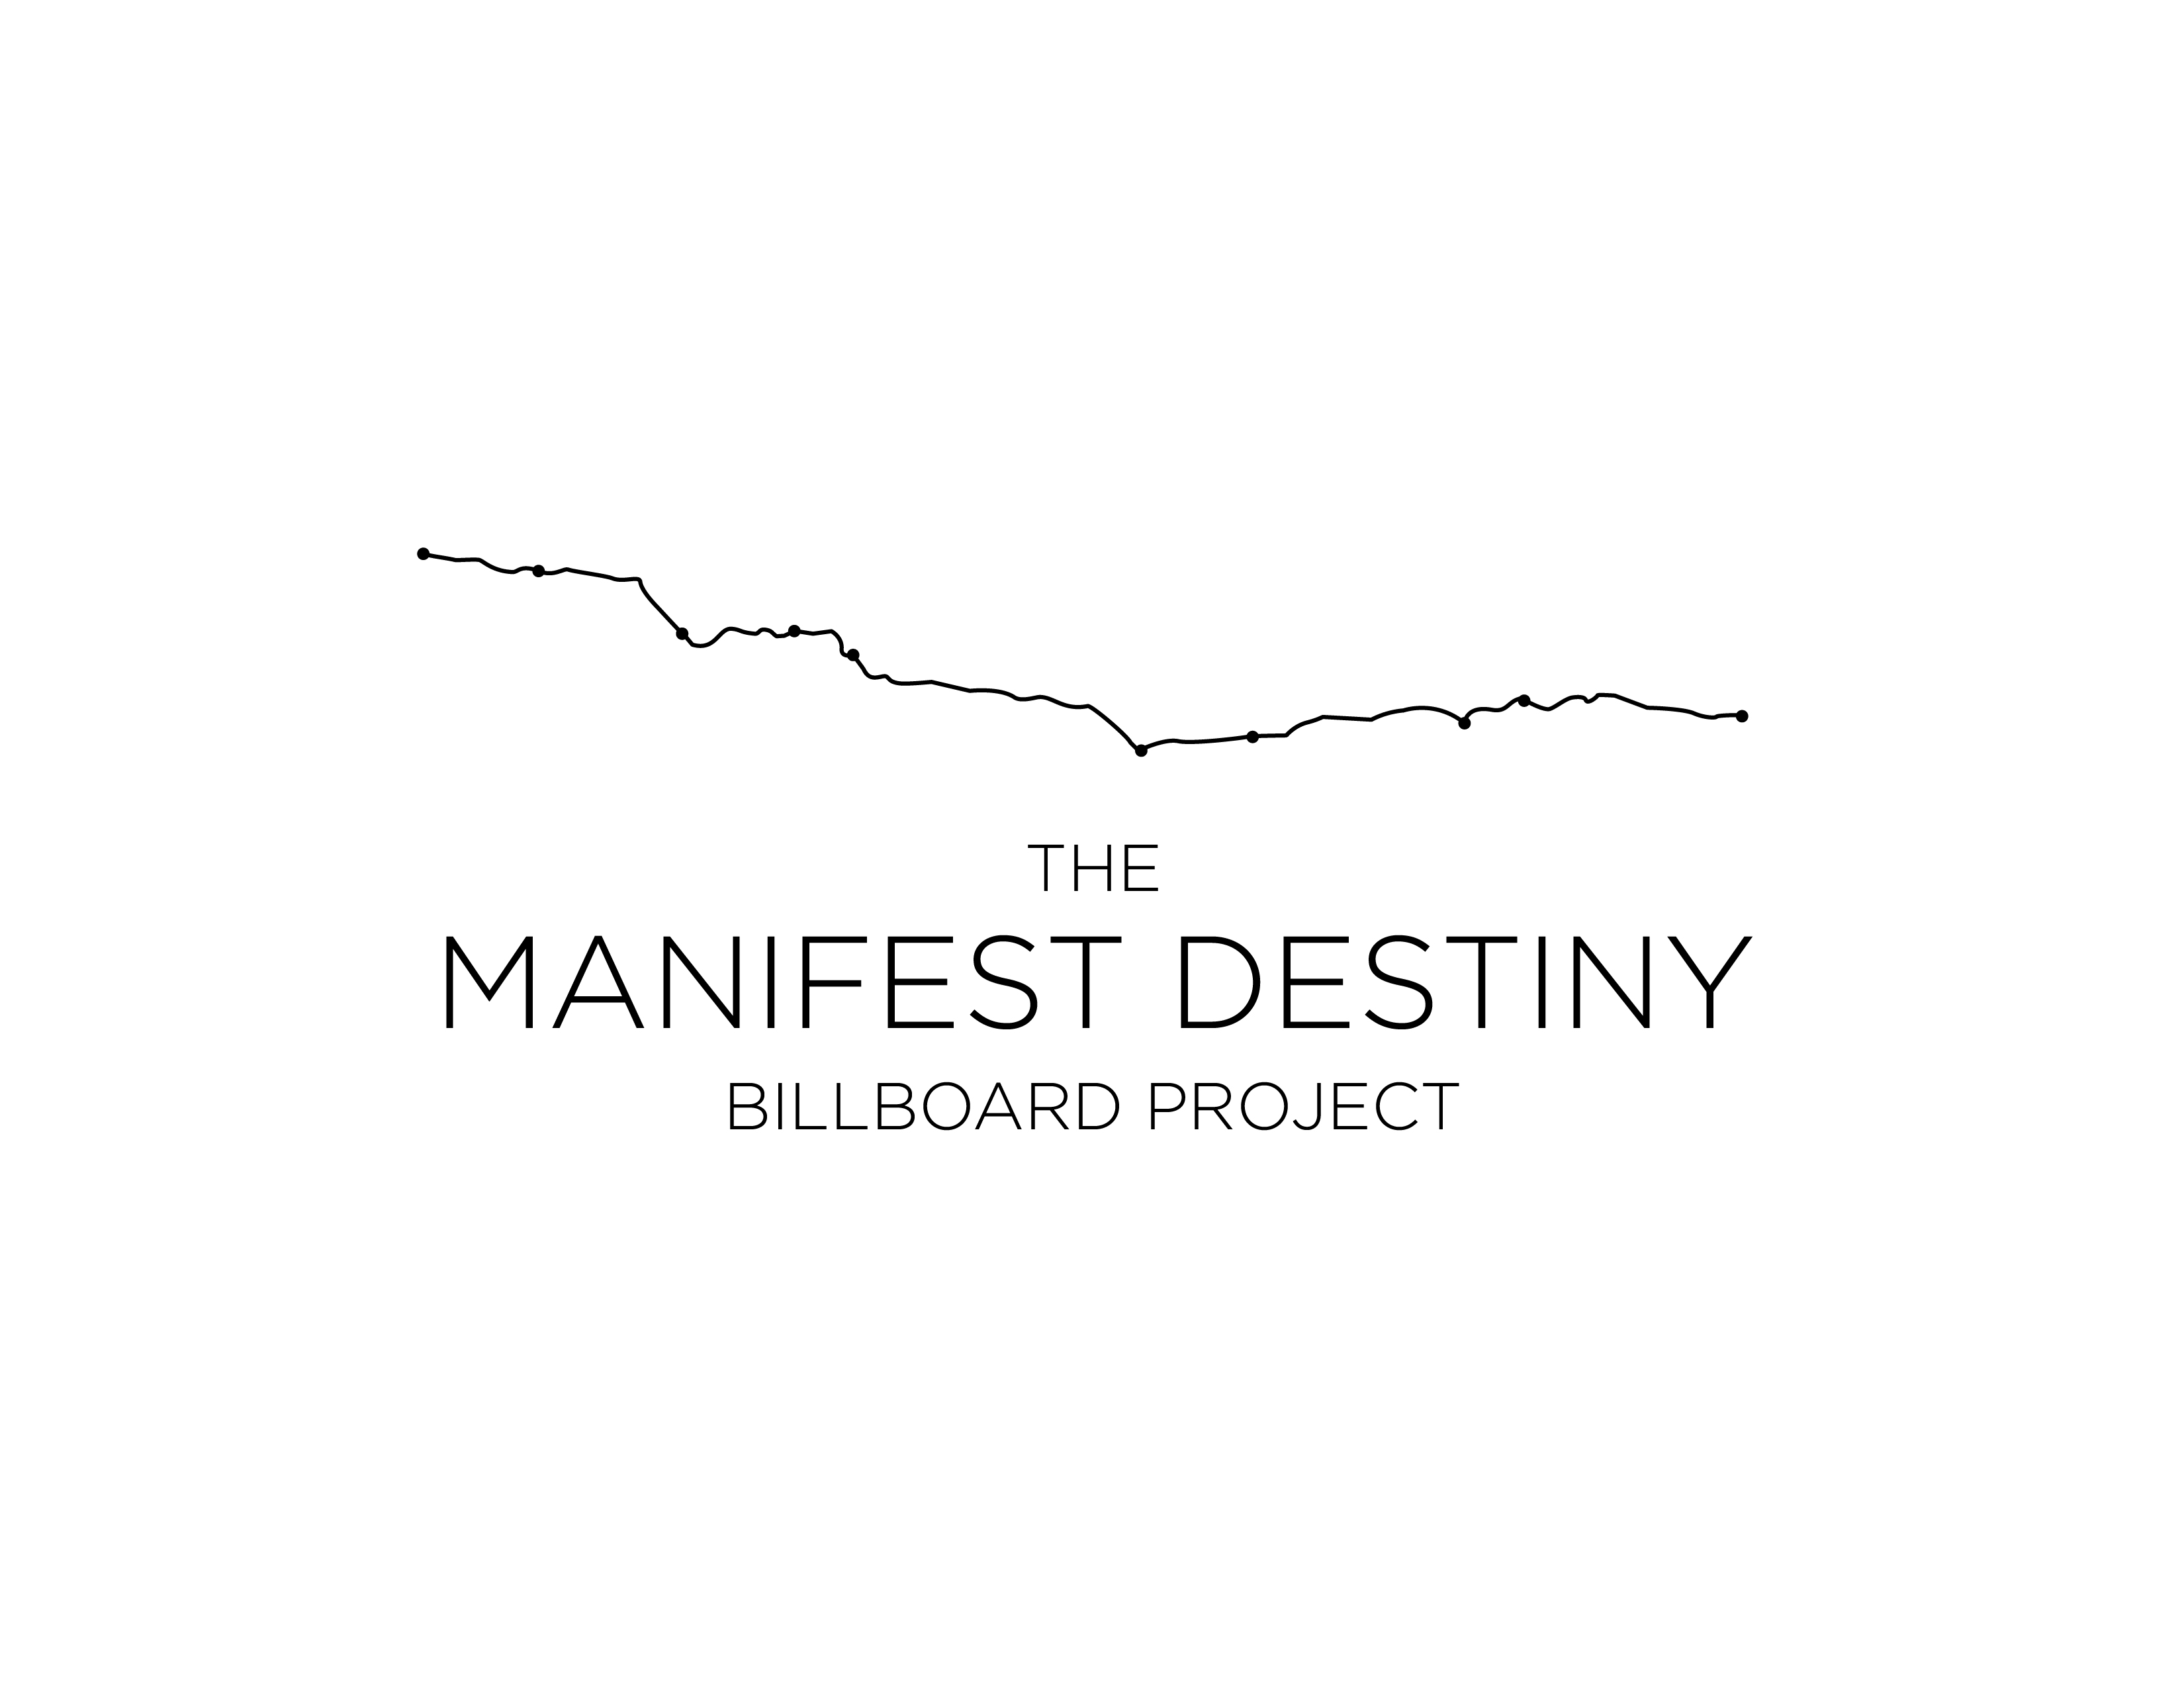 The Manifest Destiny Billboard Project Logo